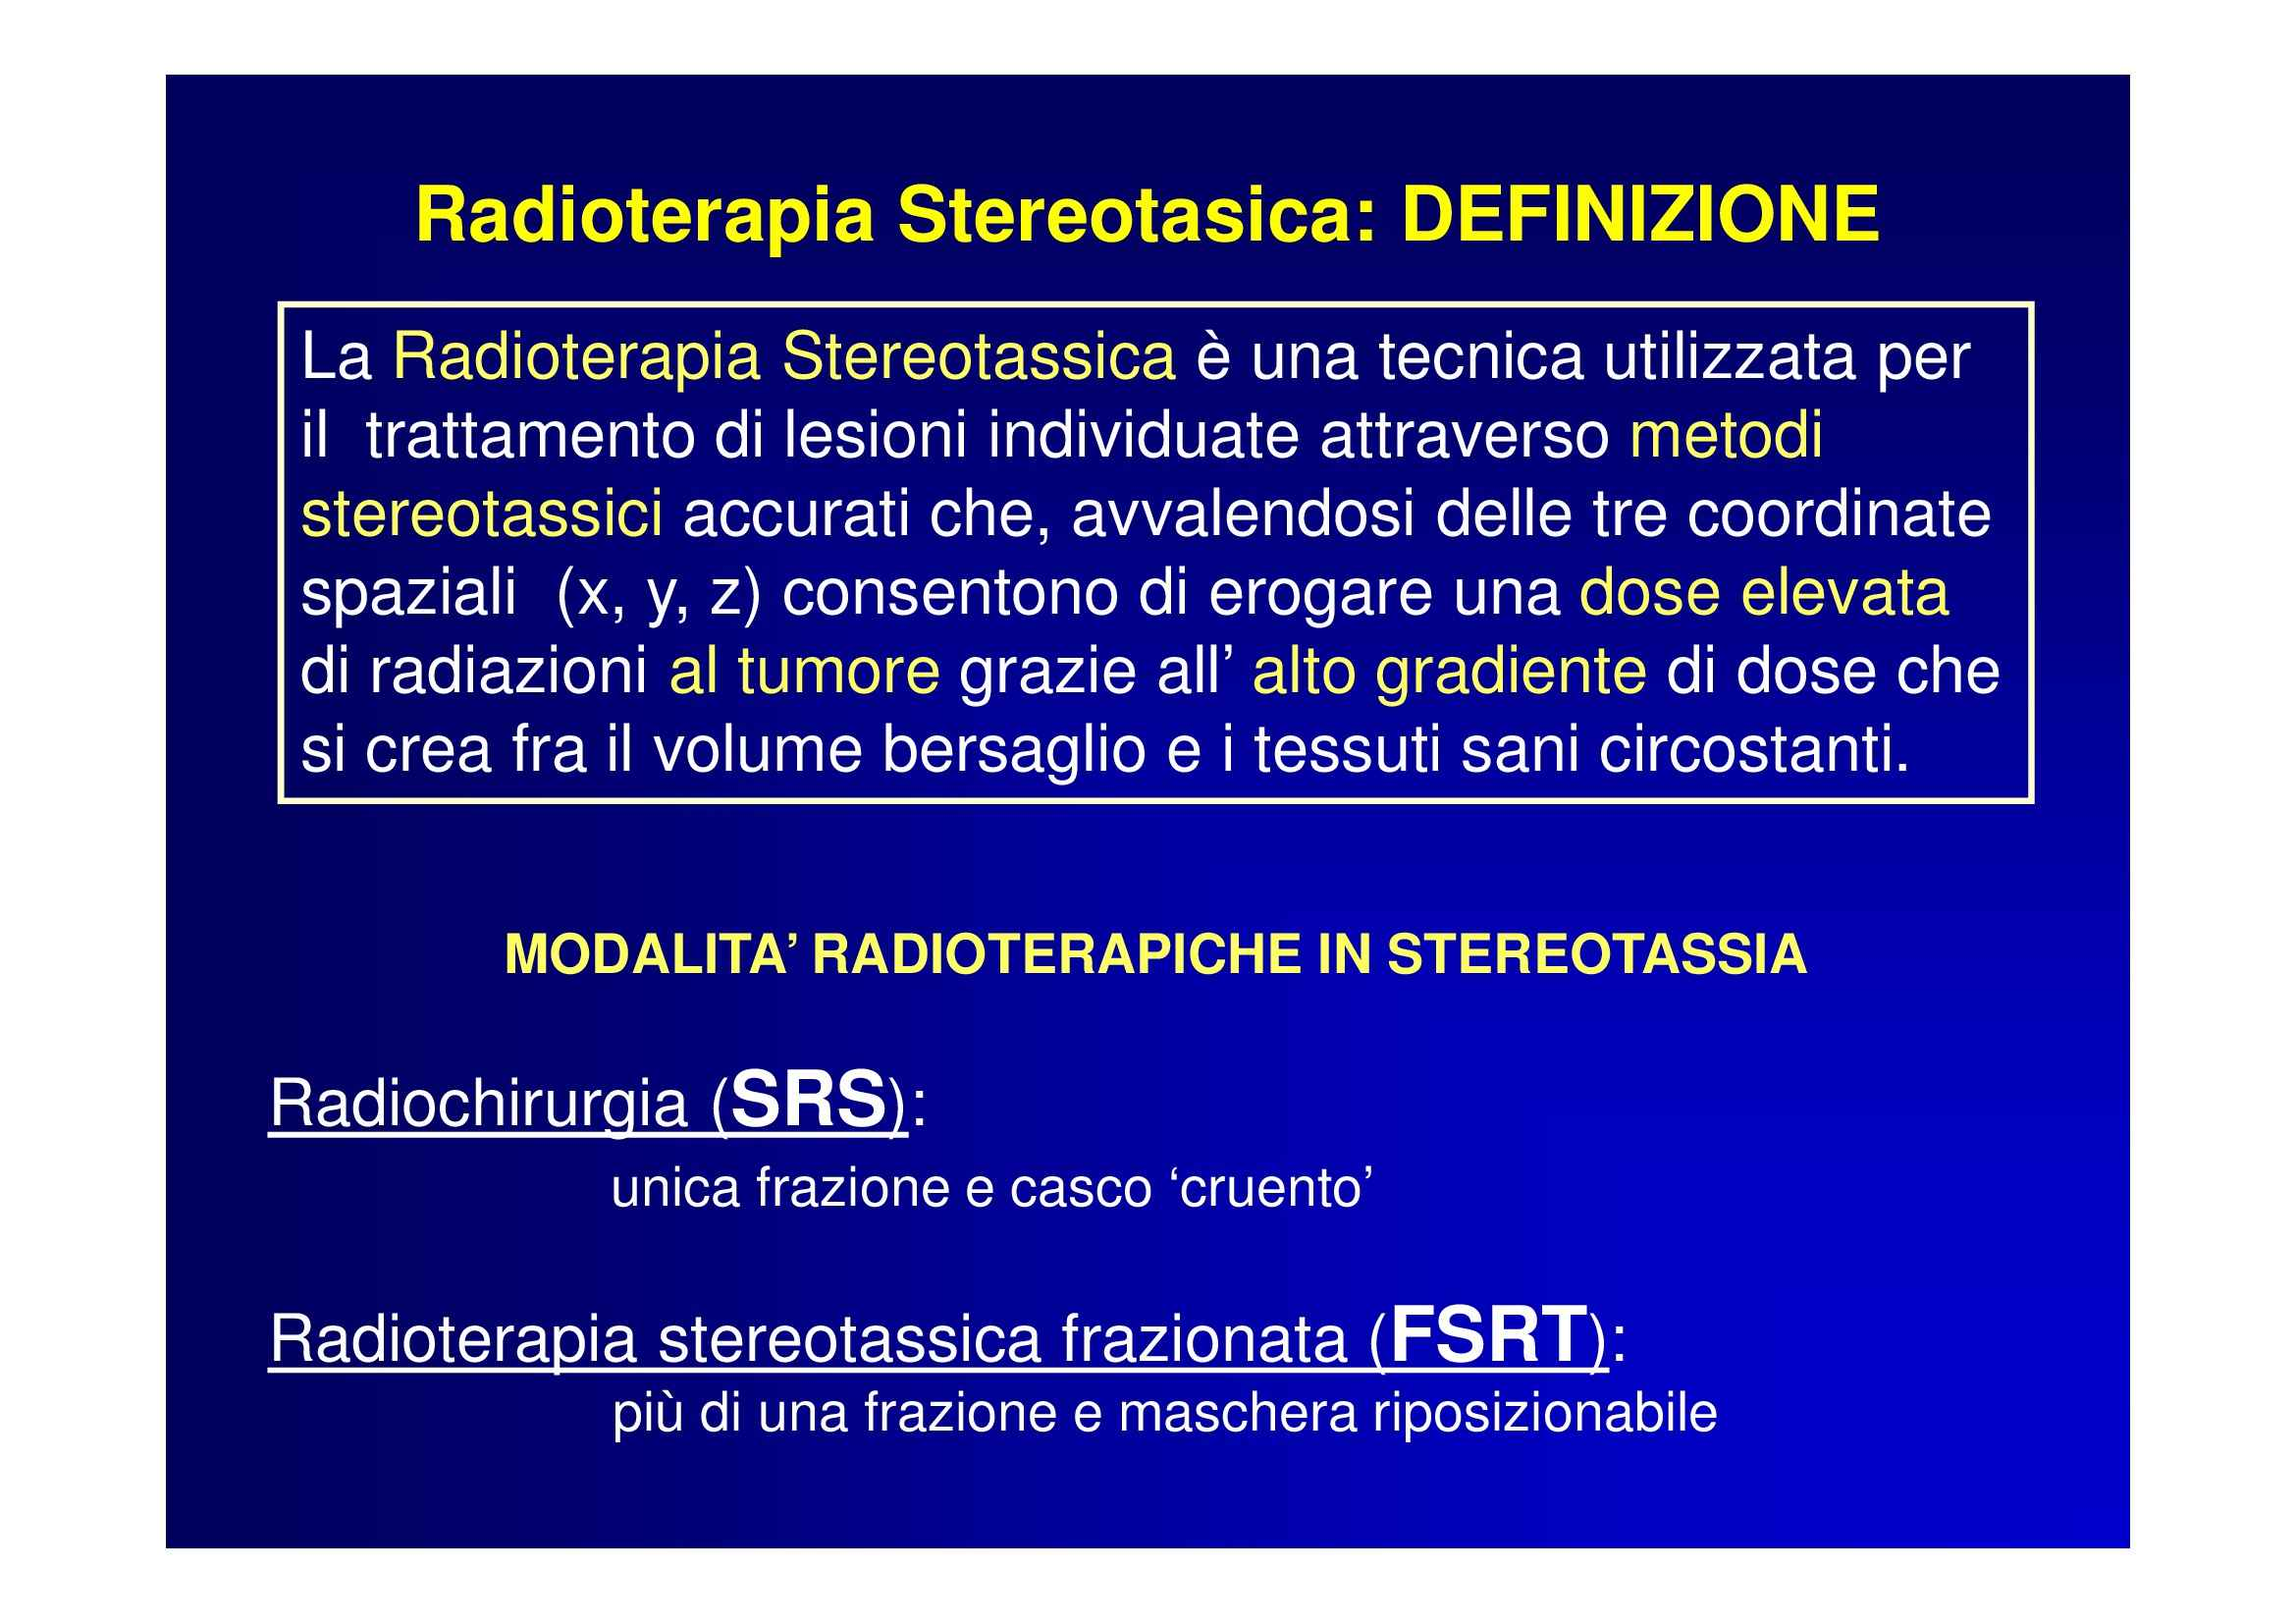 Radioterapia stereotasica